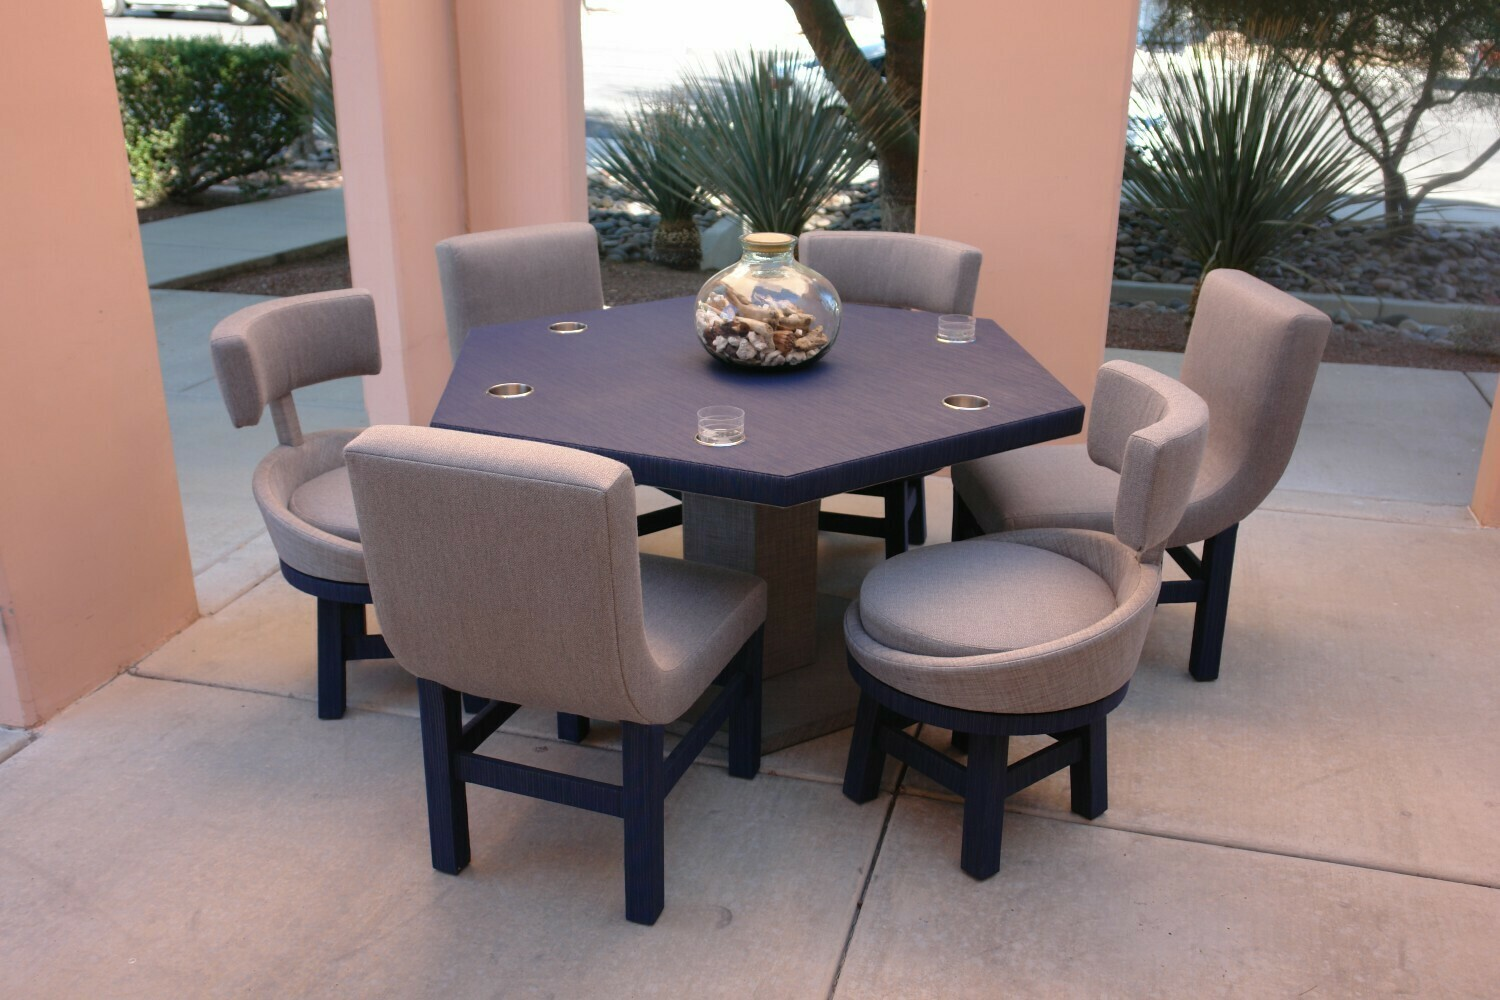 HGTV Property Brothers Collection Game Table and Chairs Set-Samples